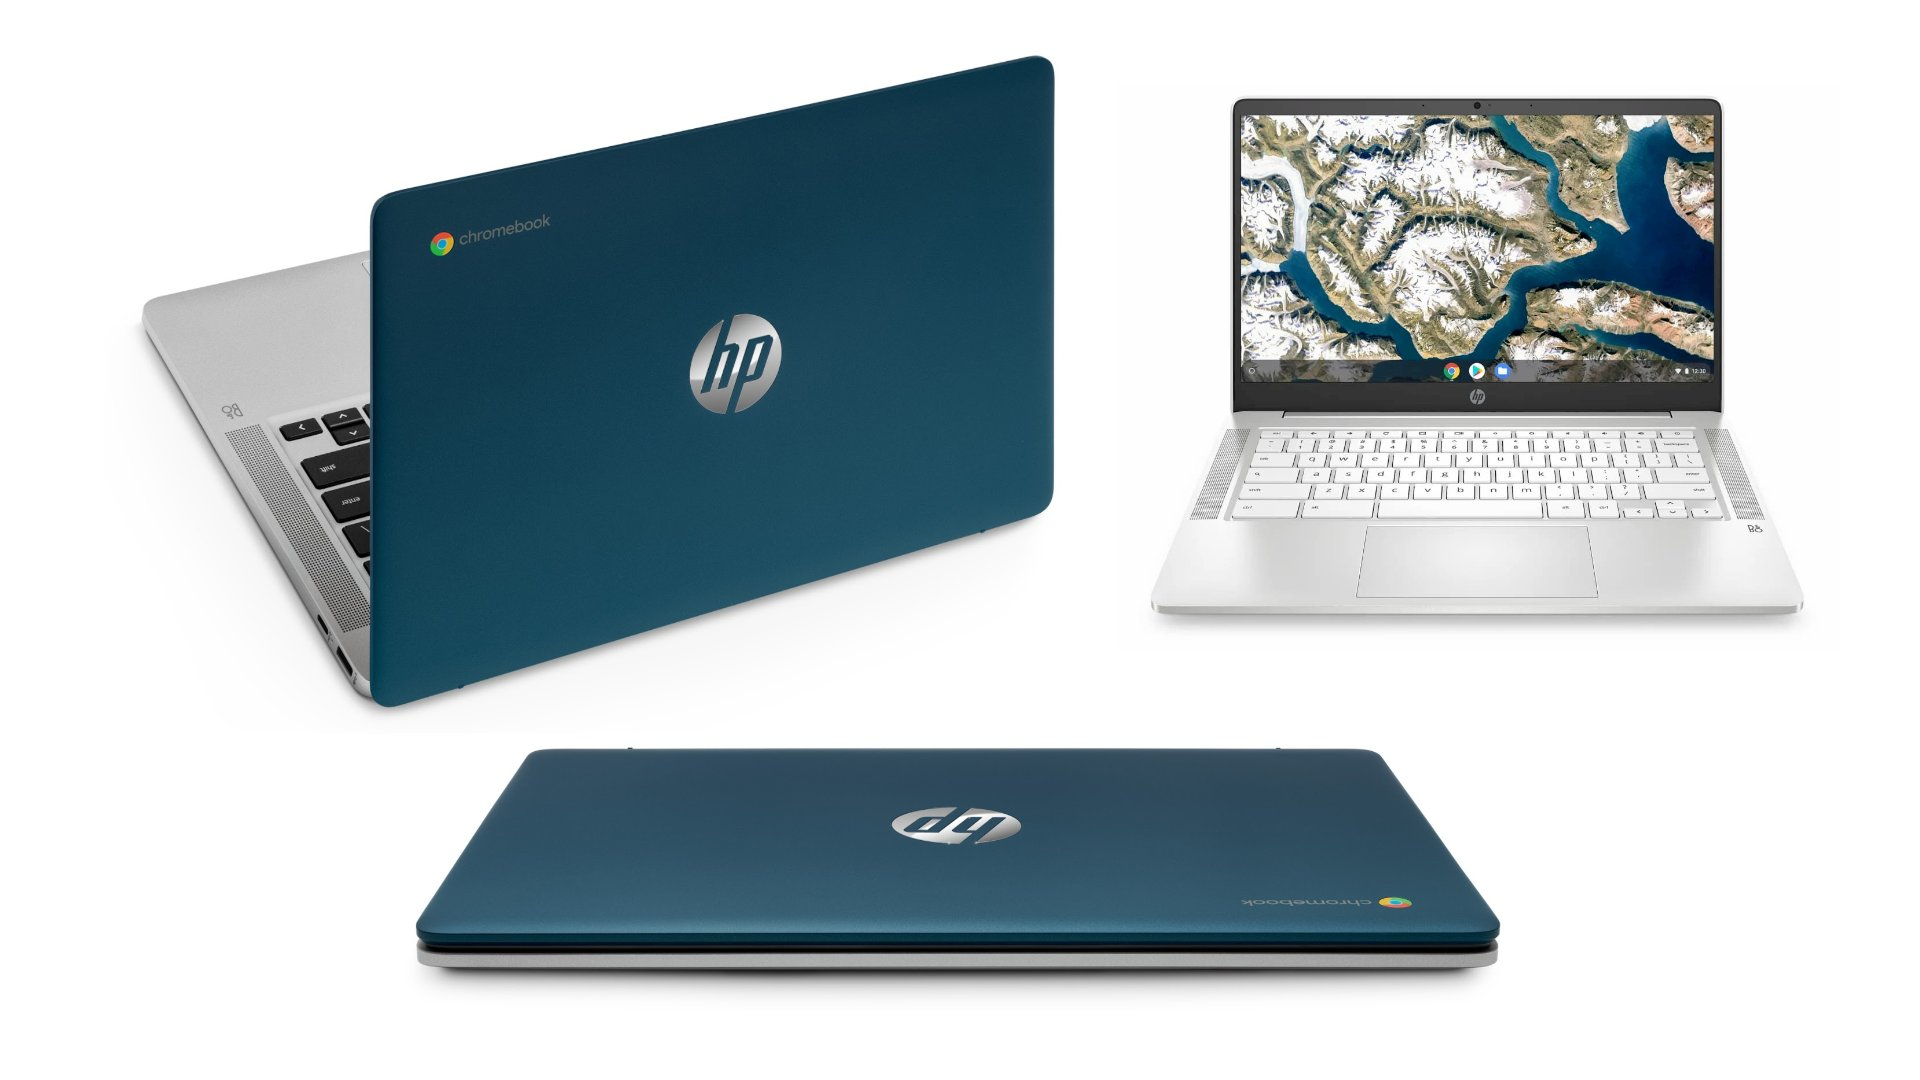 HP has quietly launched a new affordable 14-inch Chromebook you can actually buy right now